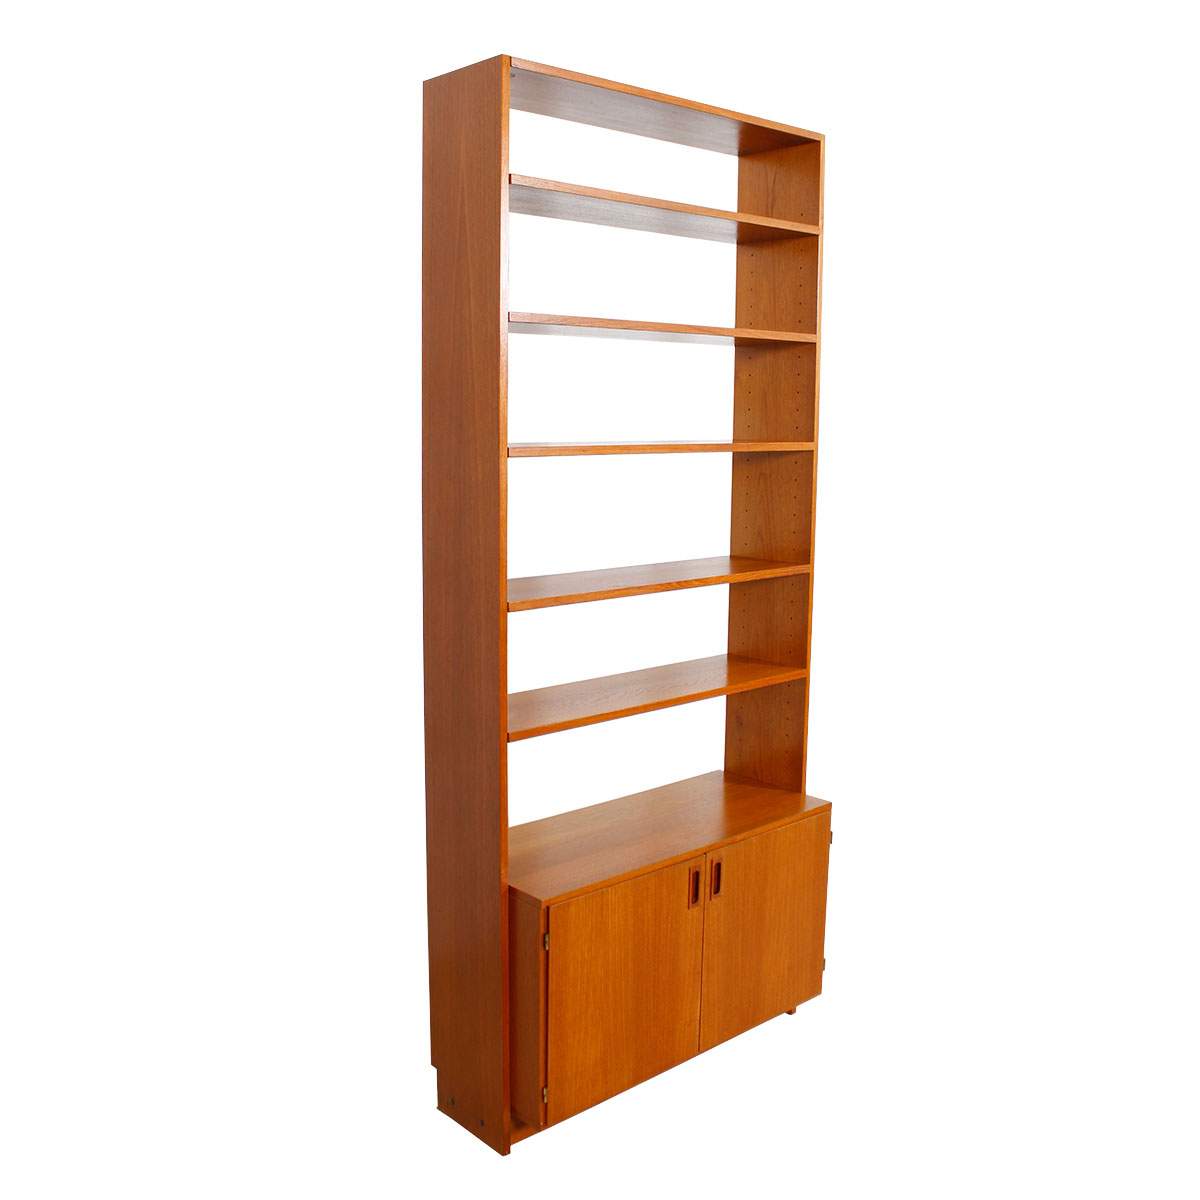 Danish Modern Teak Open Bookcase / Display Unit w / Storage Unit